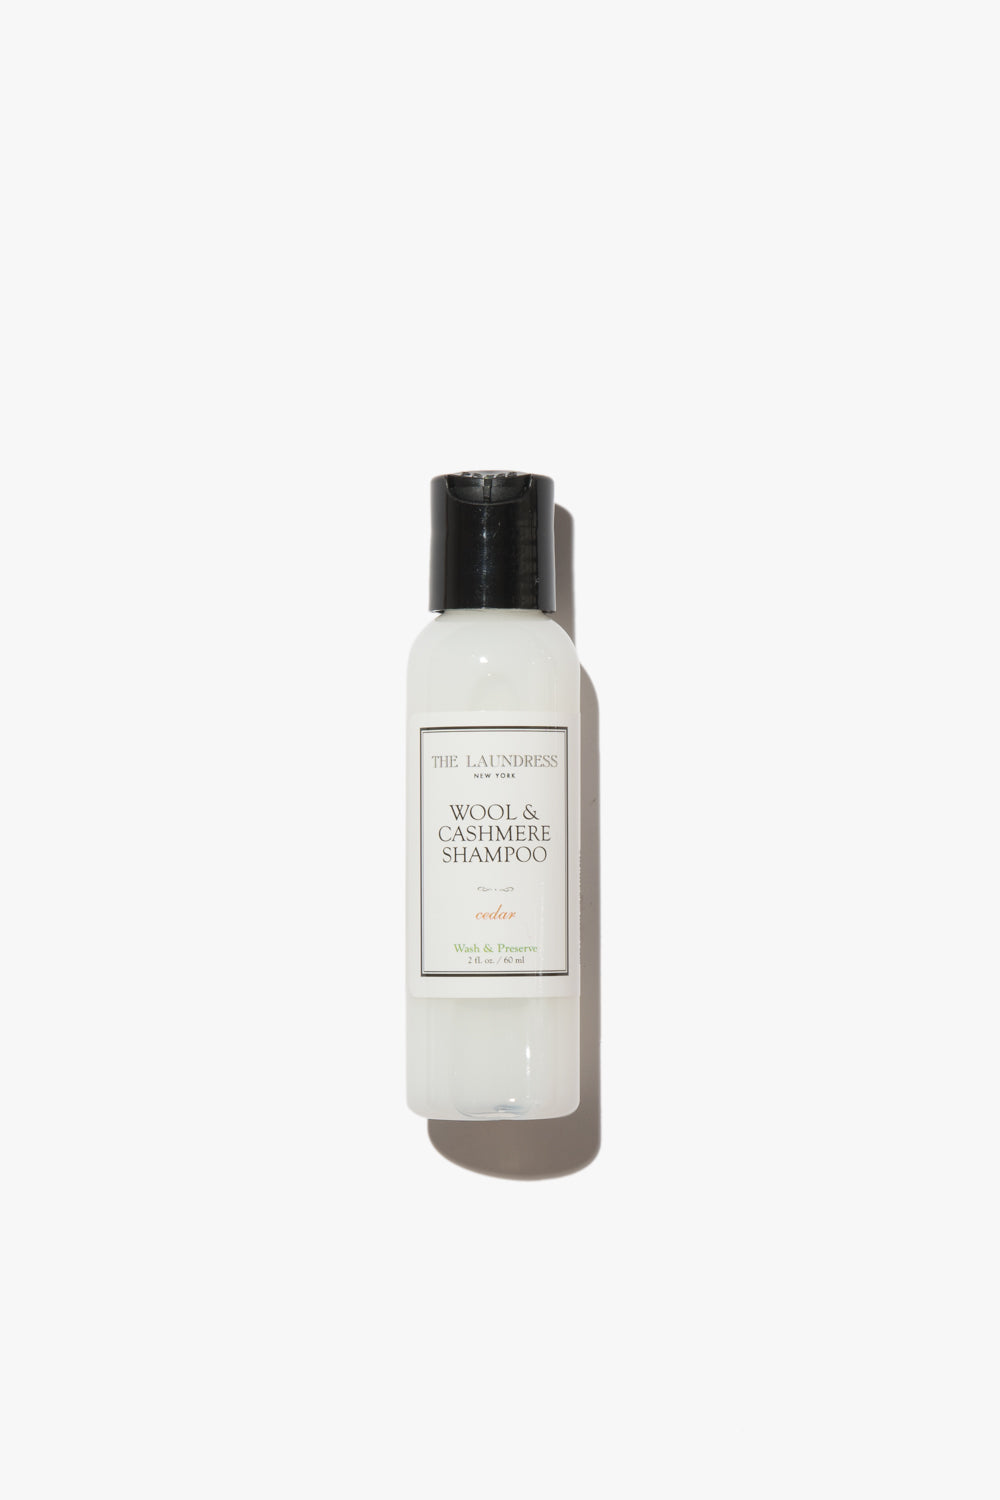 Wool & Cashmere Shampoo - Travel Size